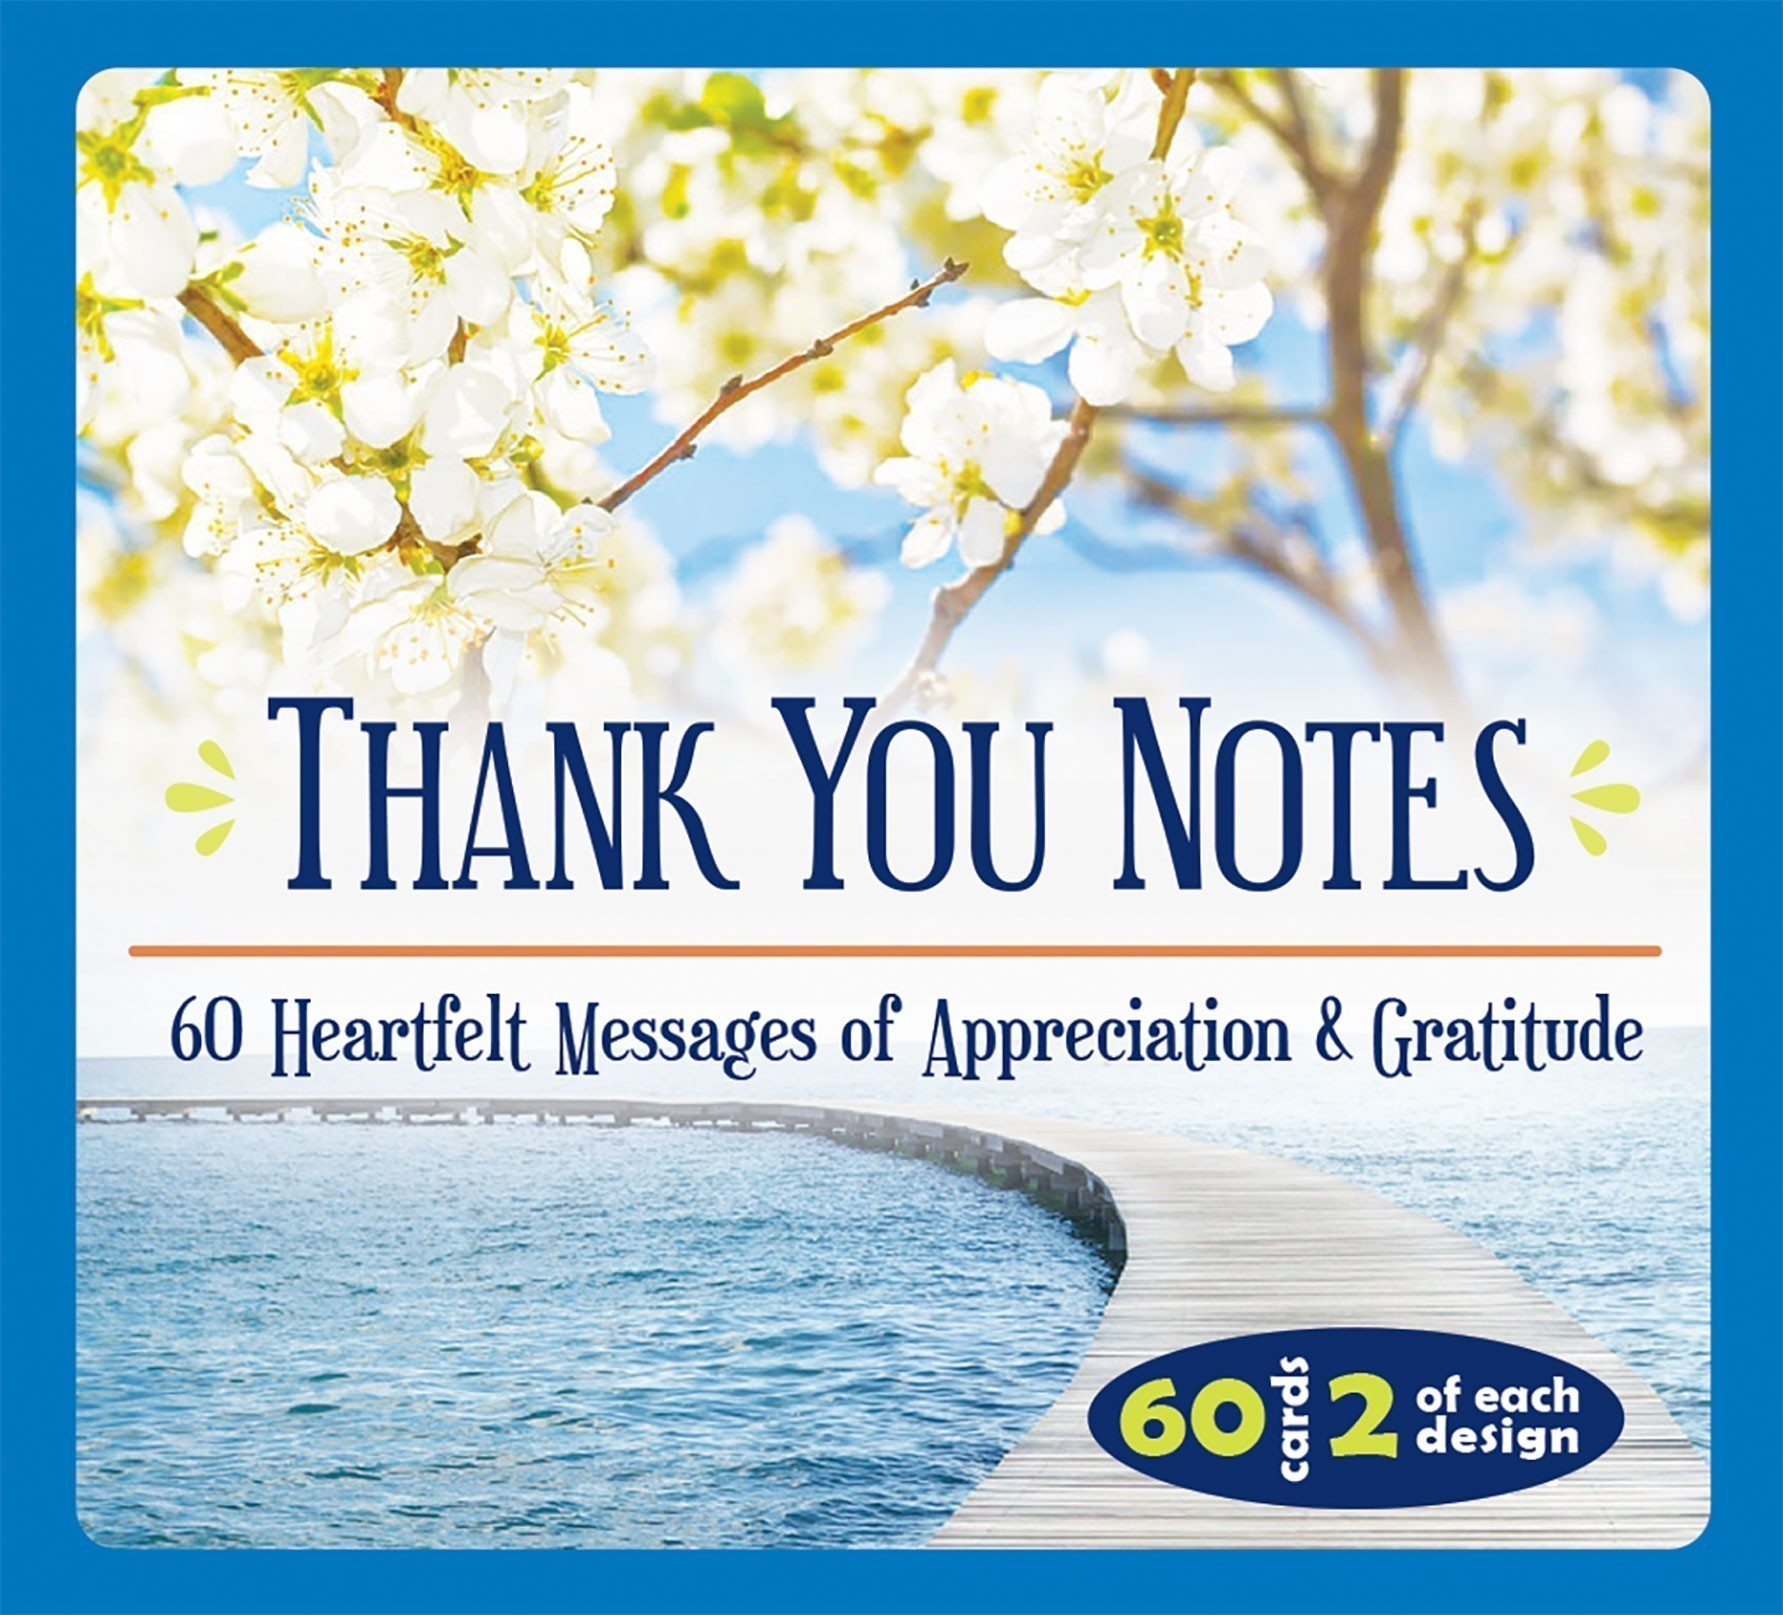 Thank You Notes- 60 Heartfelt Messages of Appreciation & Gratitude